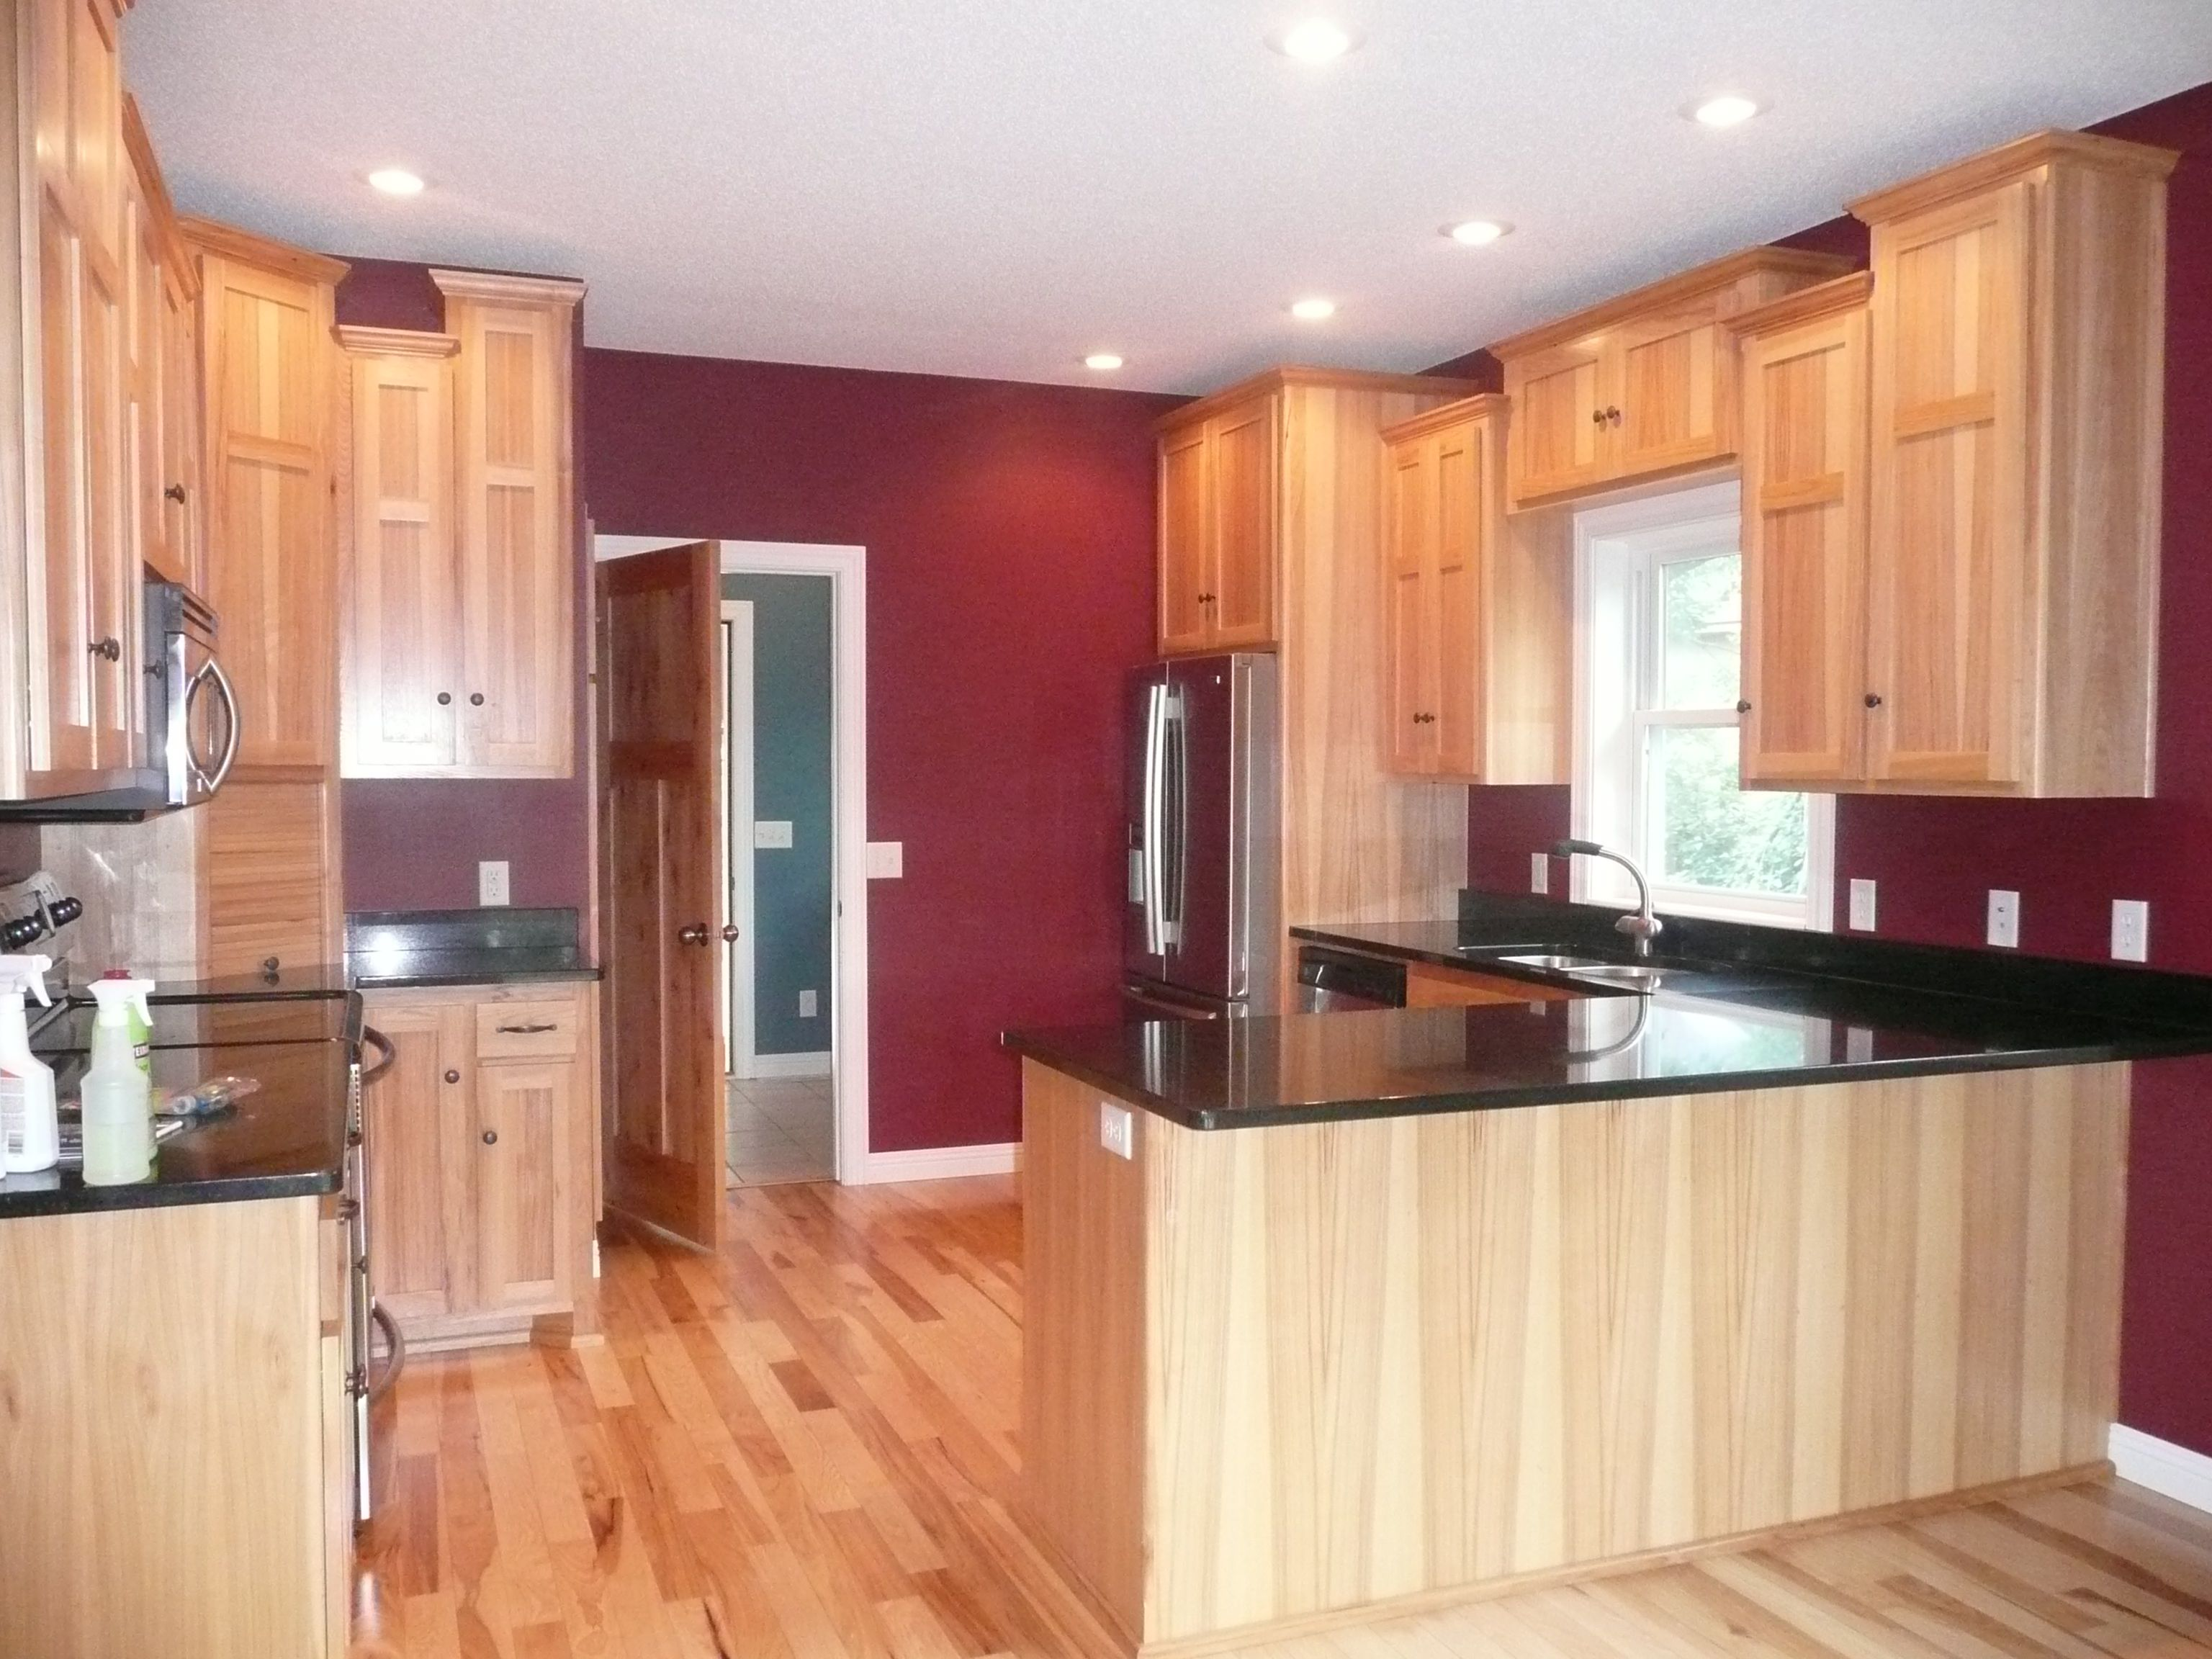 Kitchen Hickory Cabinets And Floor Granite Countertop